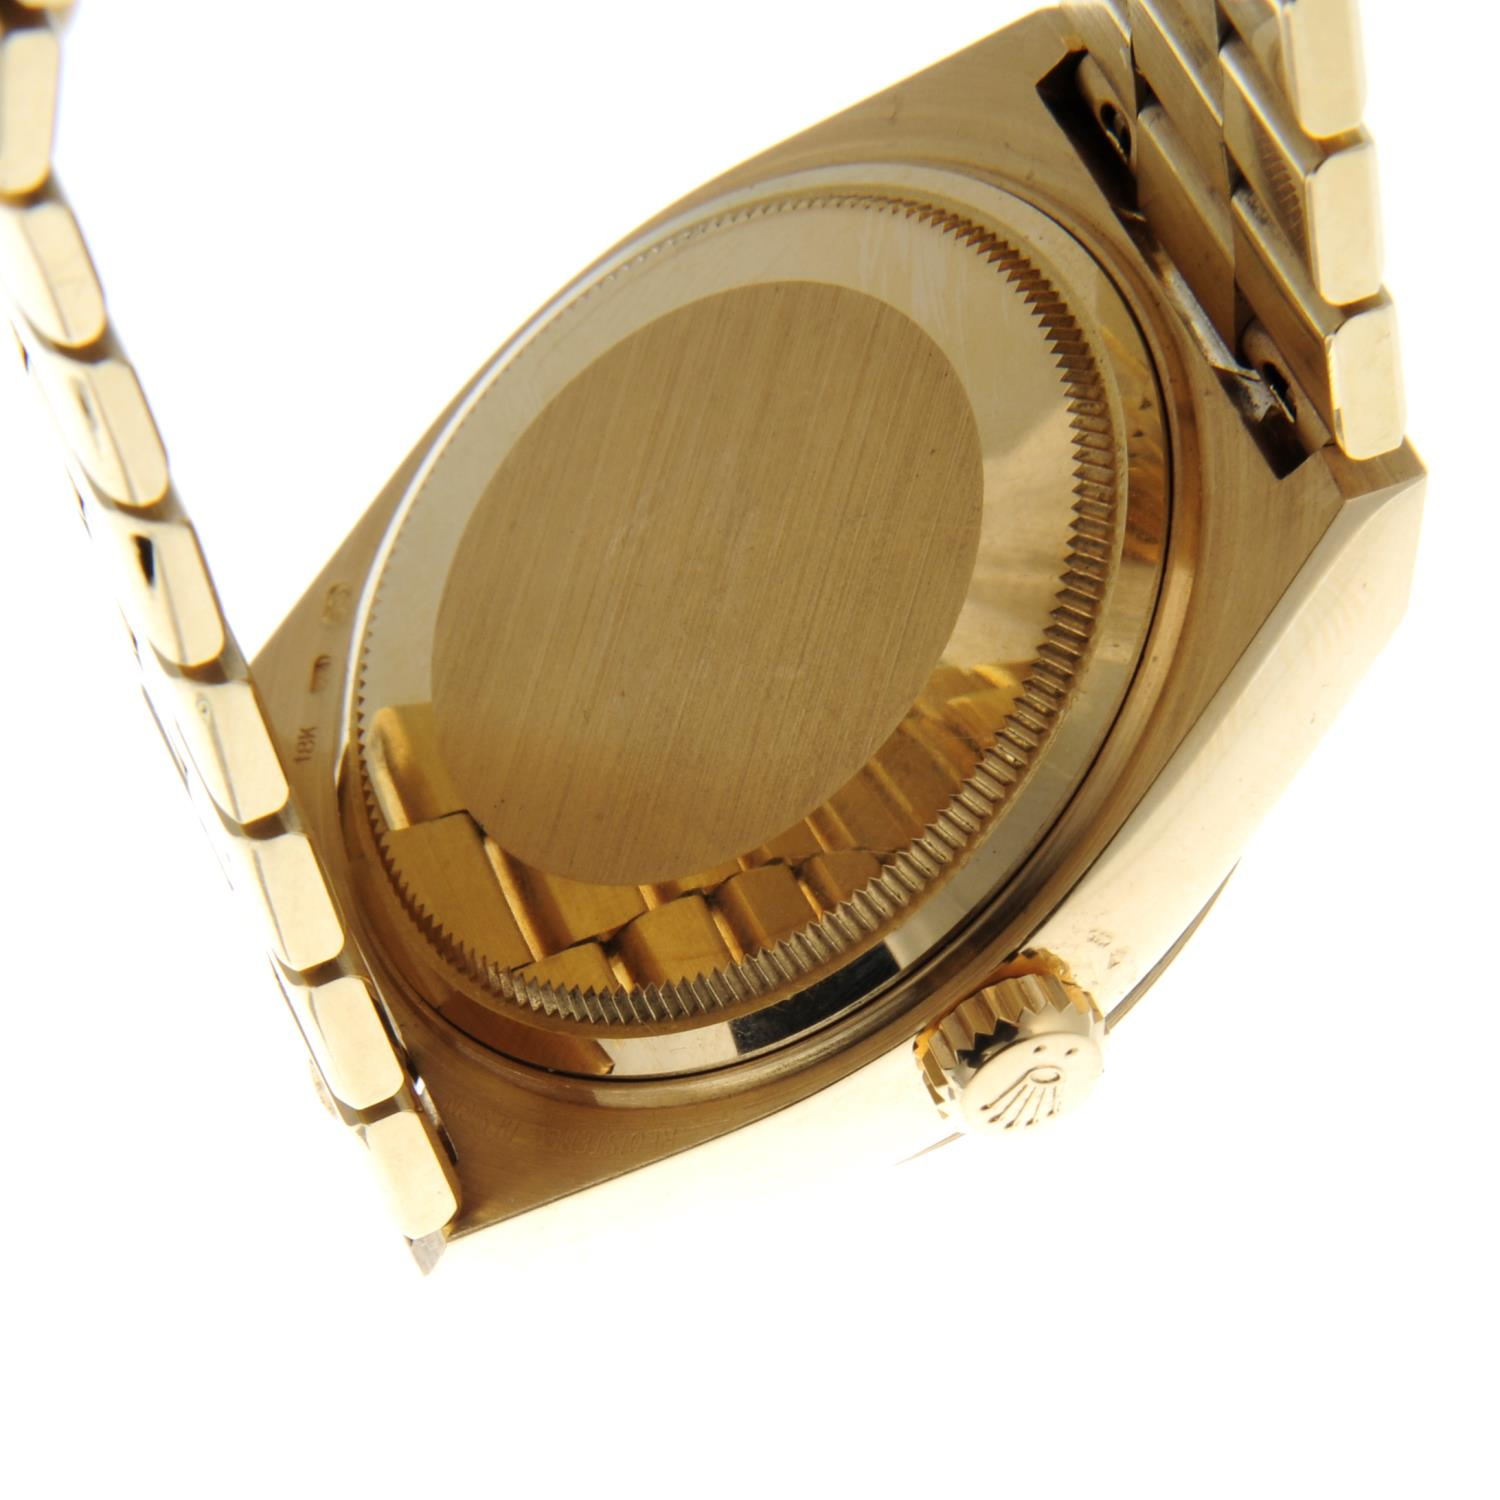 ROLEX - an Oysterquartz Day-Date bracelet watch. - Image 2 of 5